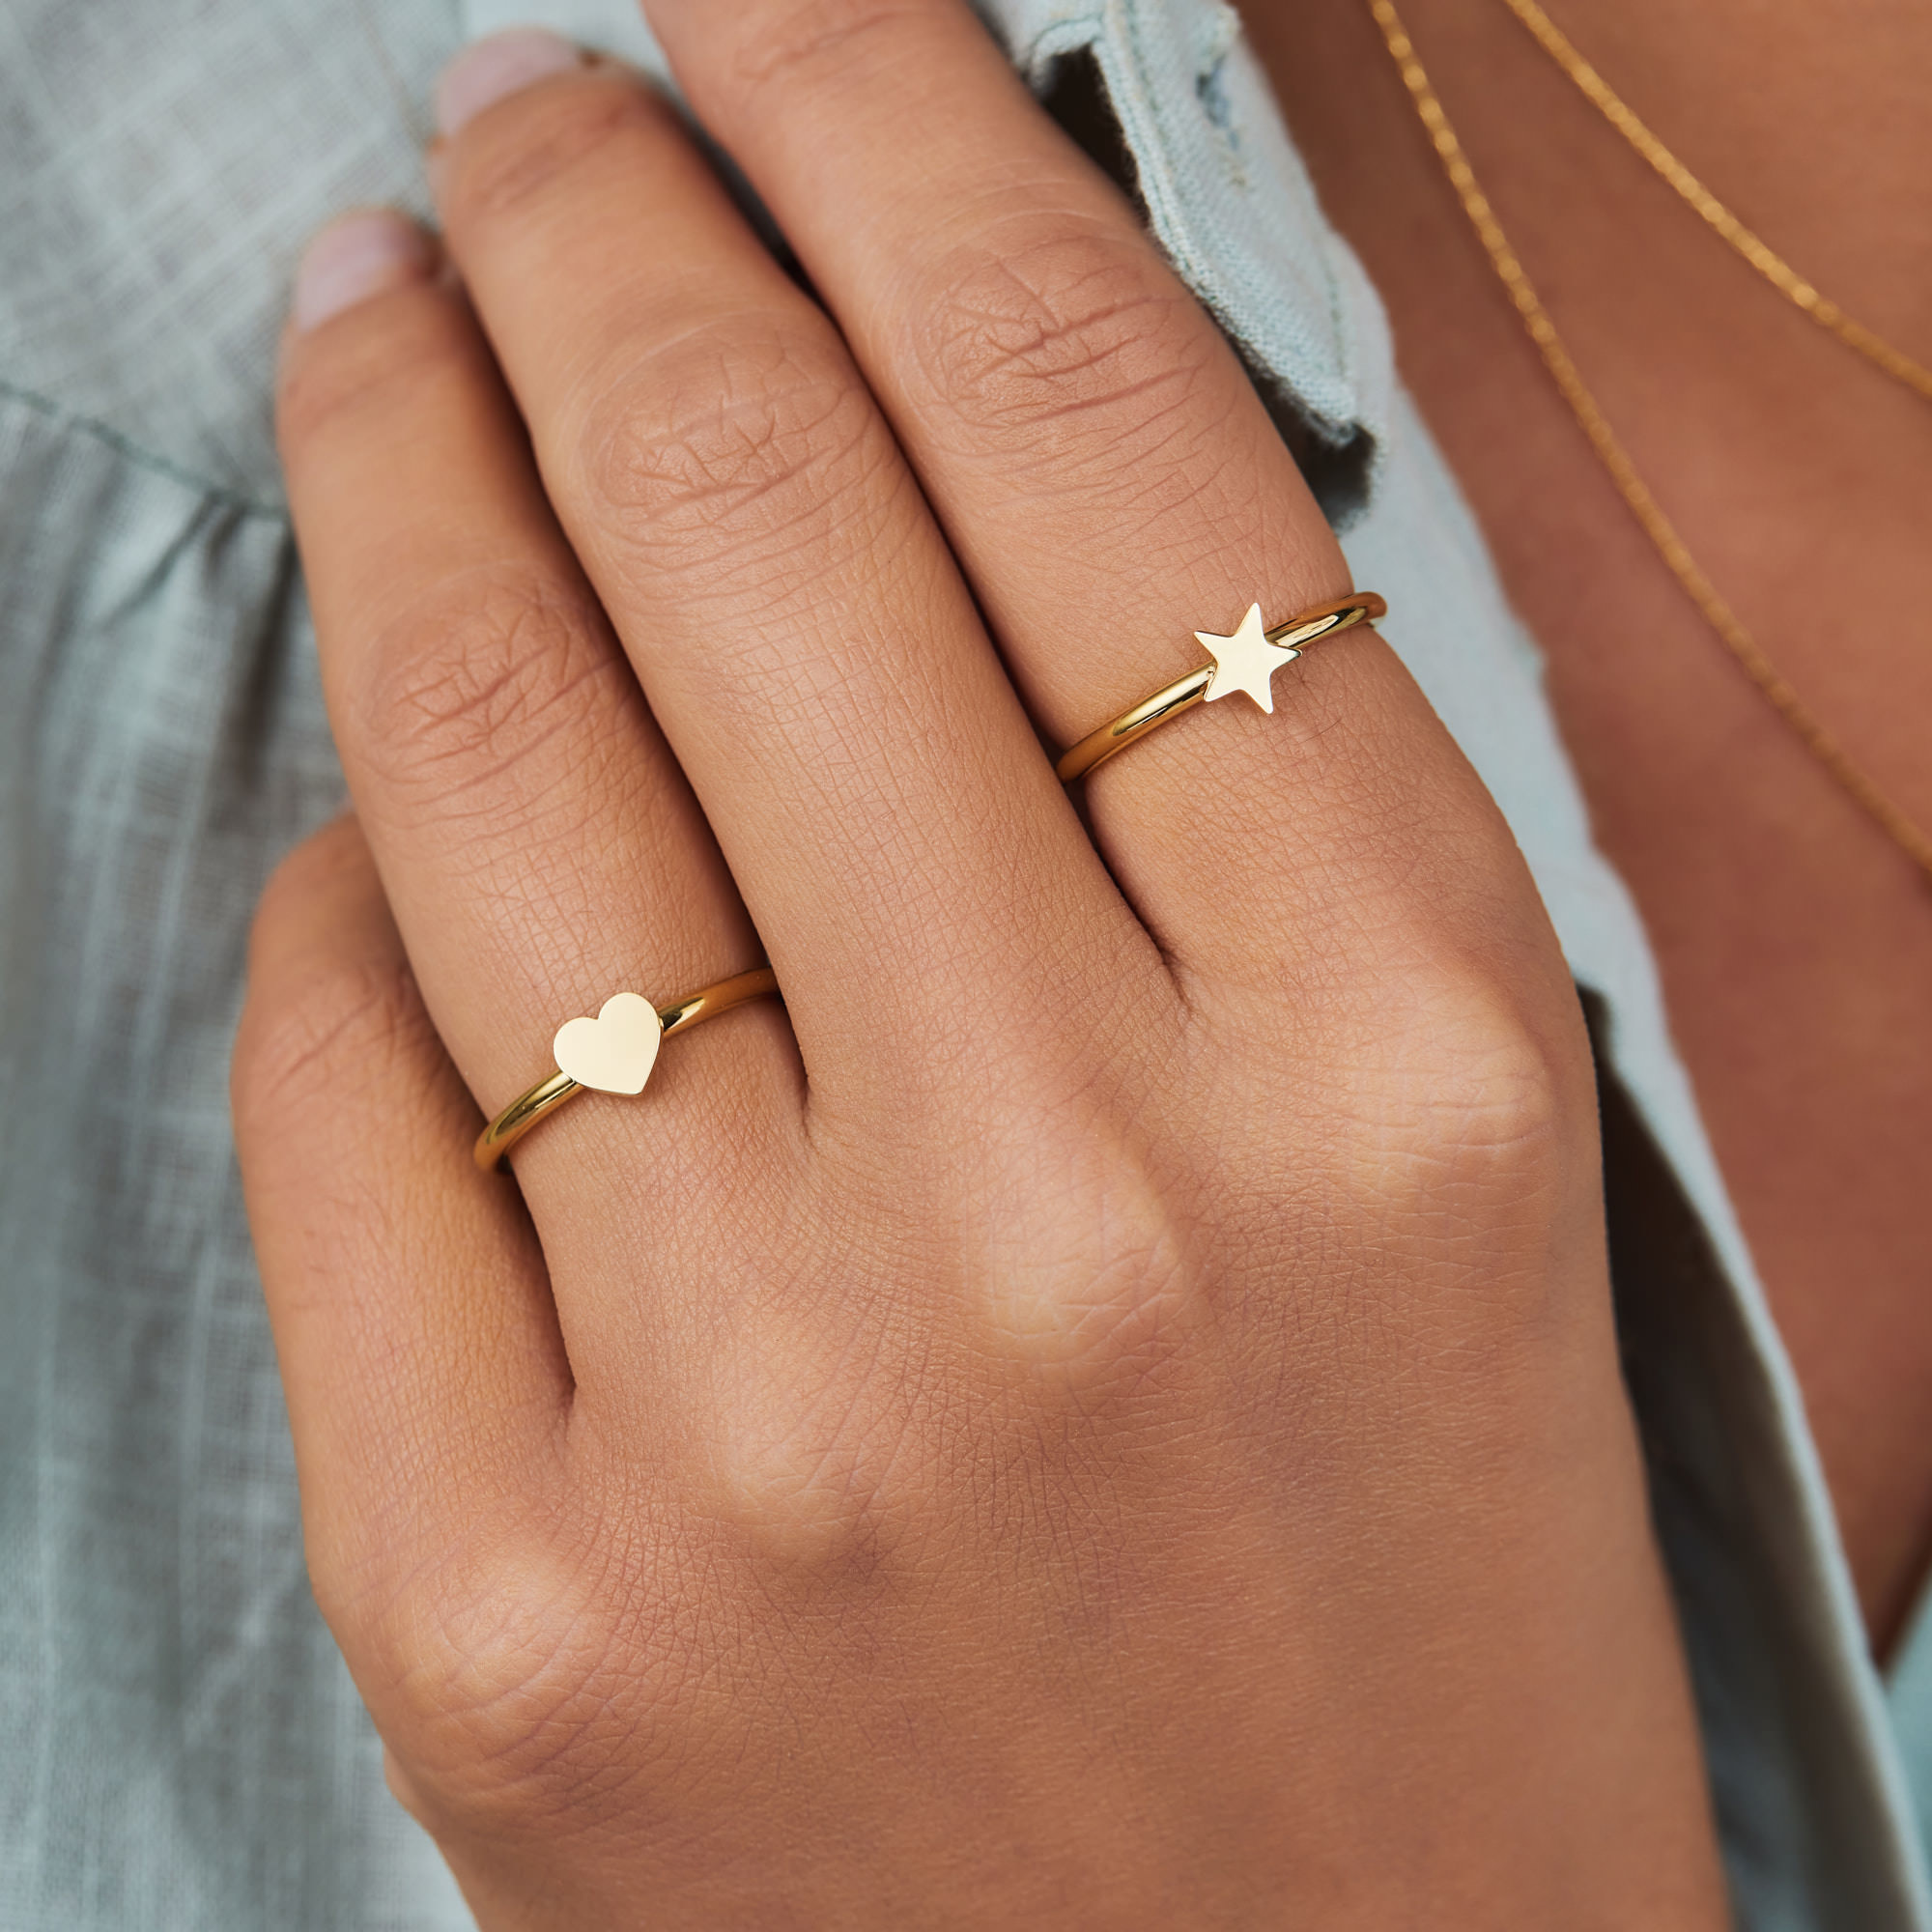 May Sparkle Forever Young Star gold colored ring